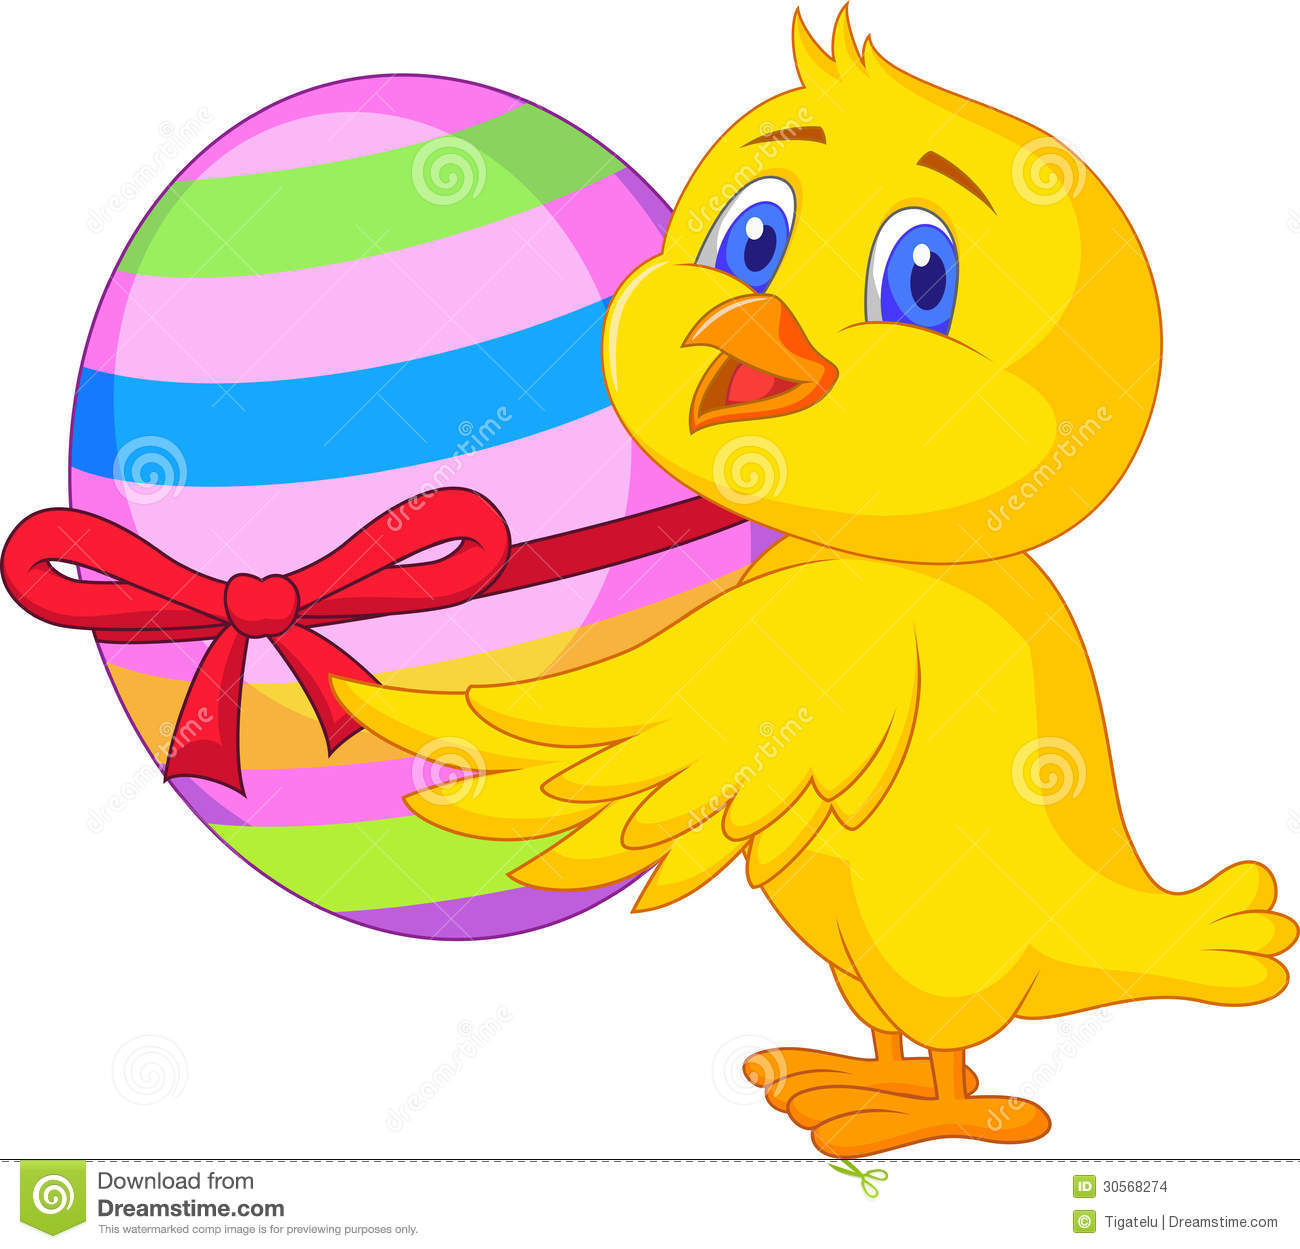 cute chicken cartoon with easter egg celebration ribbon - Easter Chick